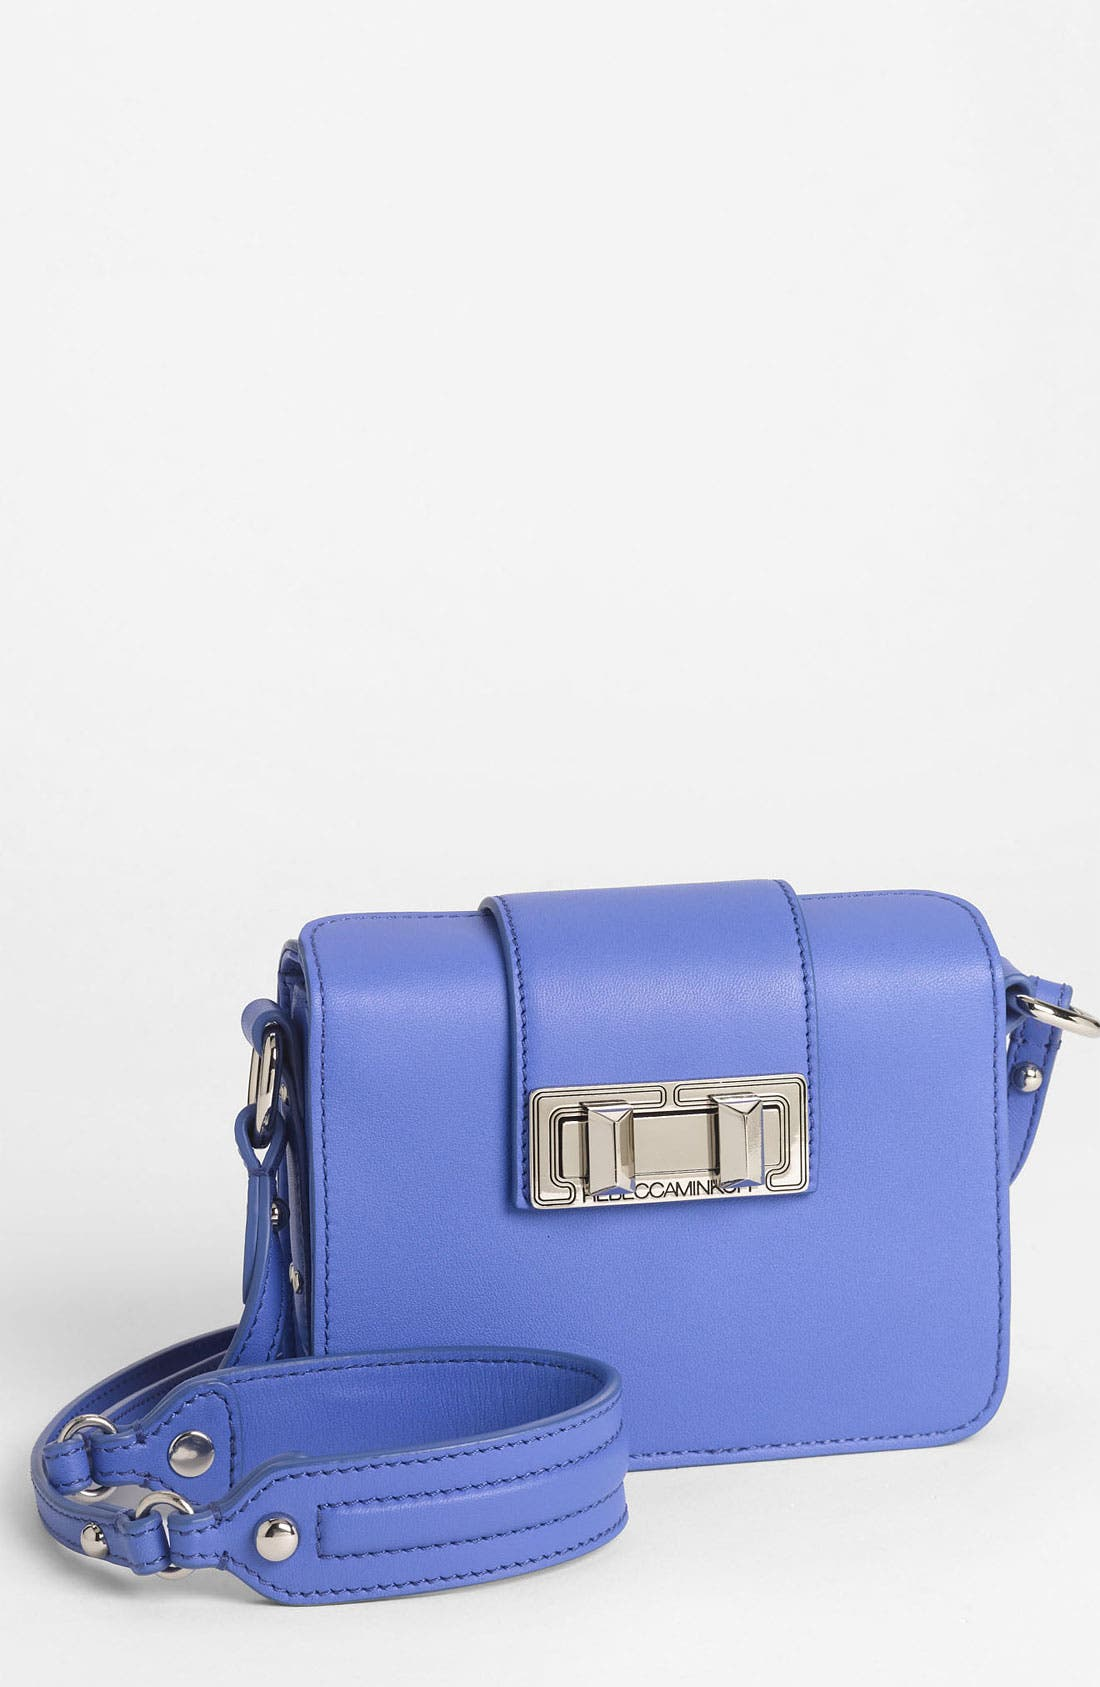 Alternate Image 1 Selected - Rebecca Minkoff 'Box - Mini' Crossbody Bag